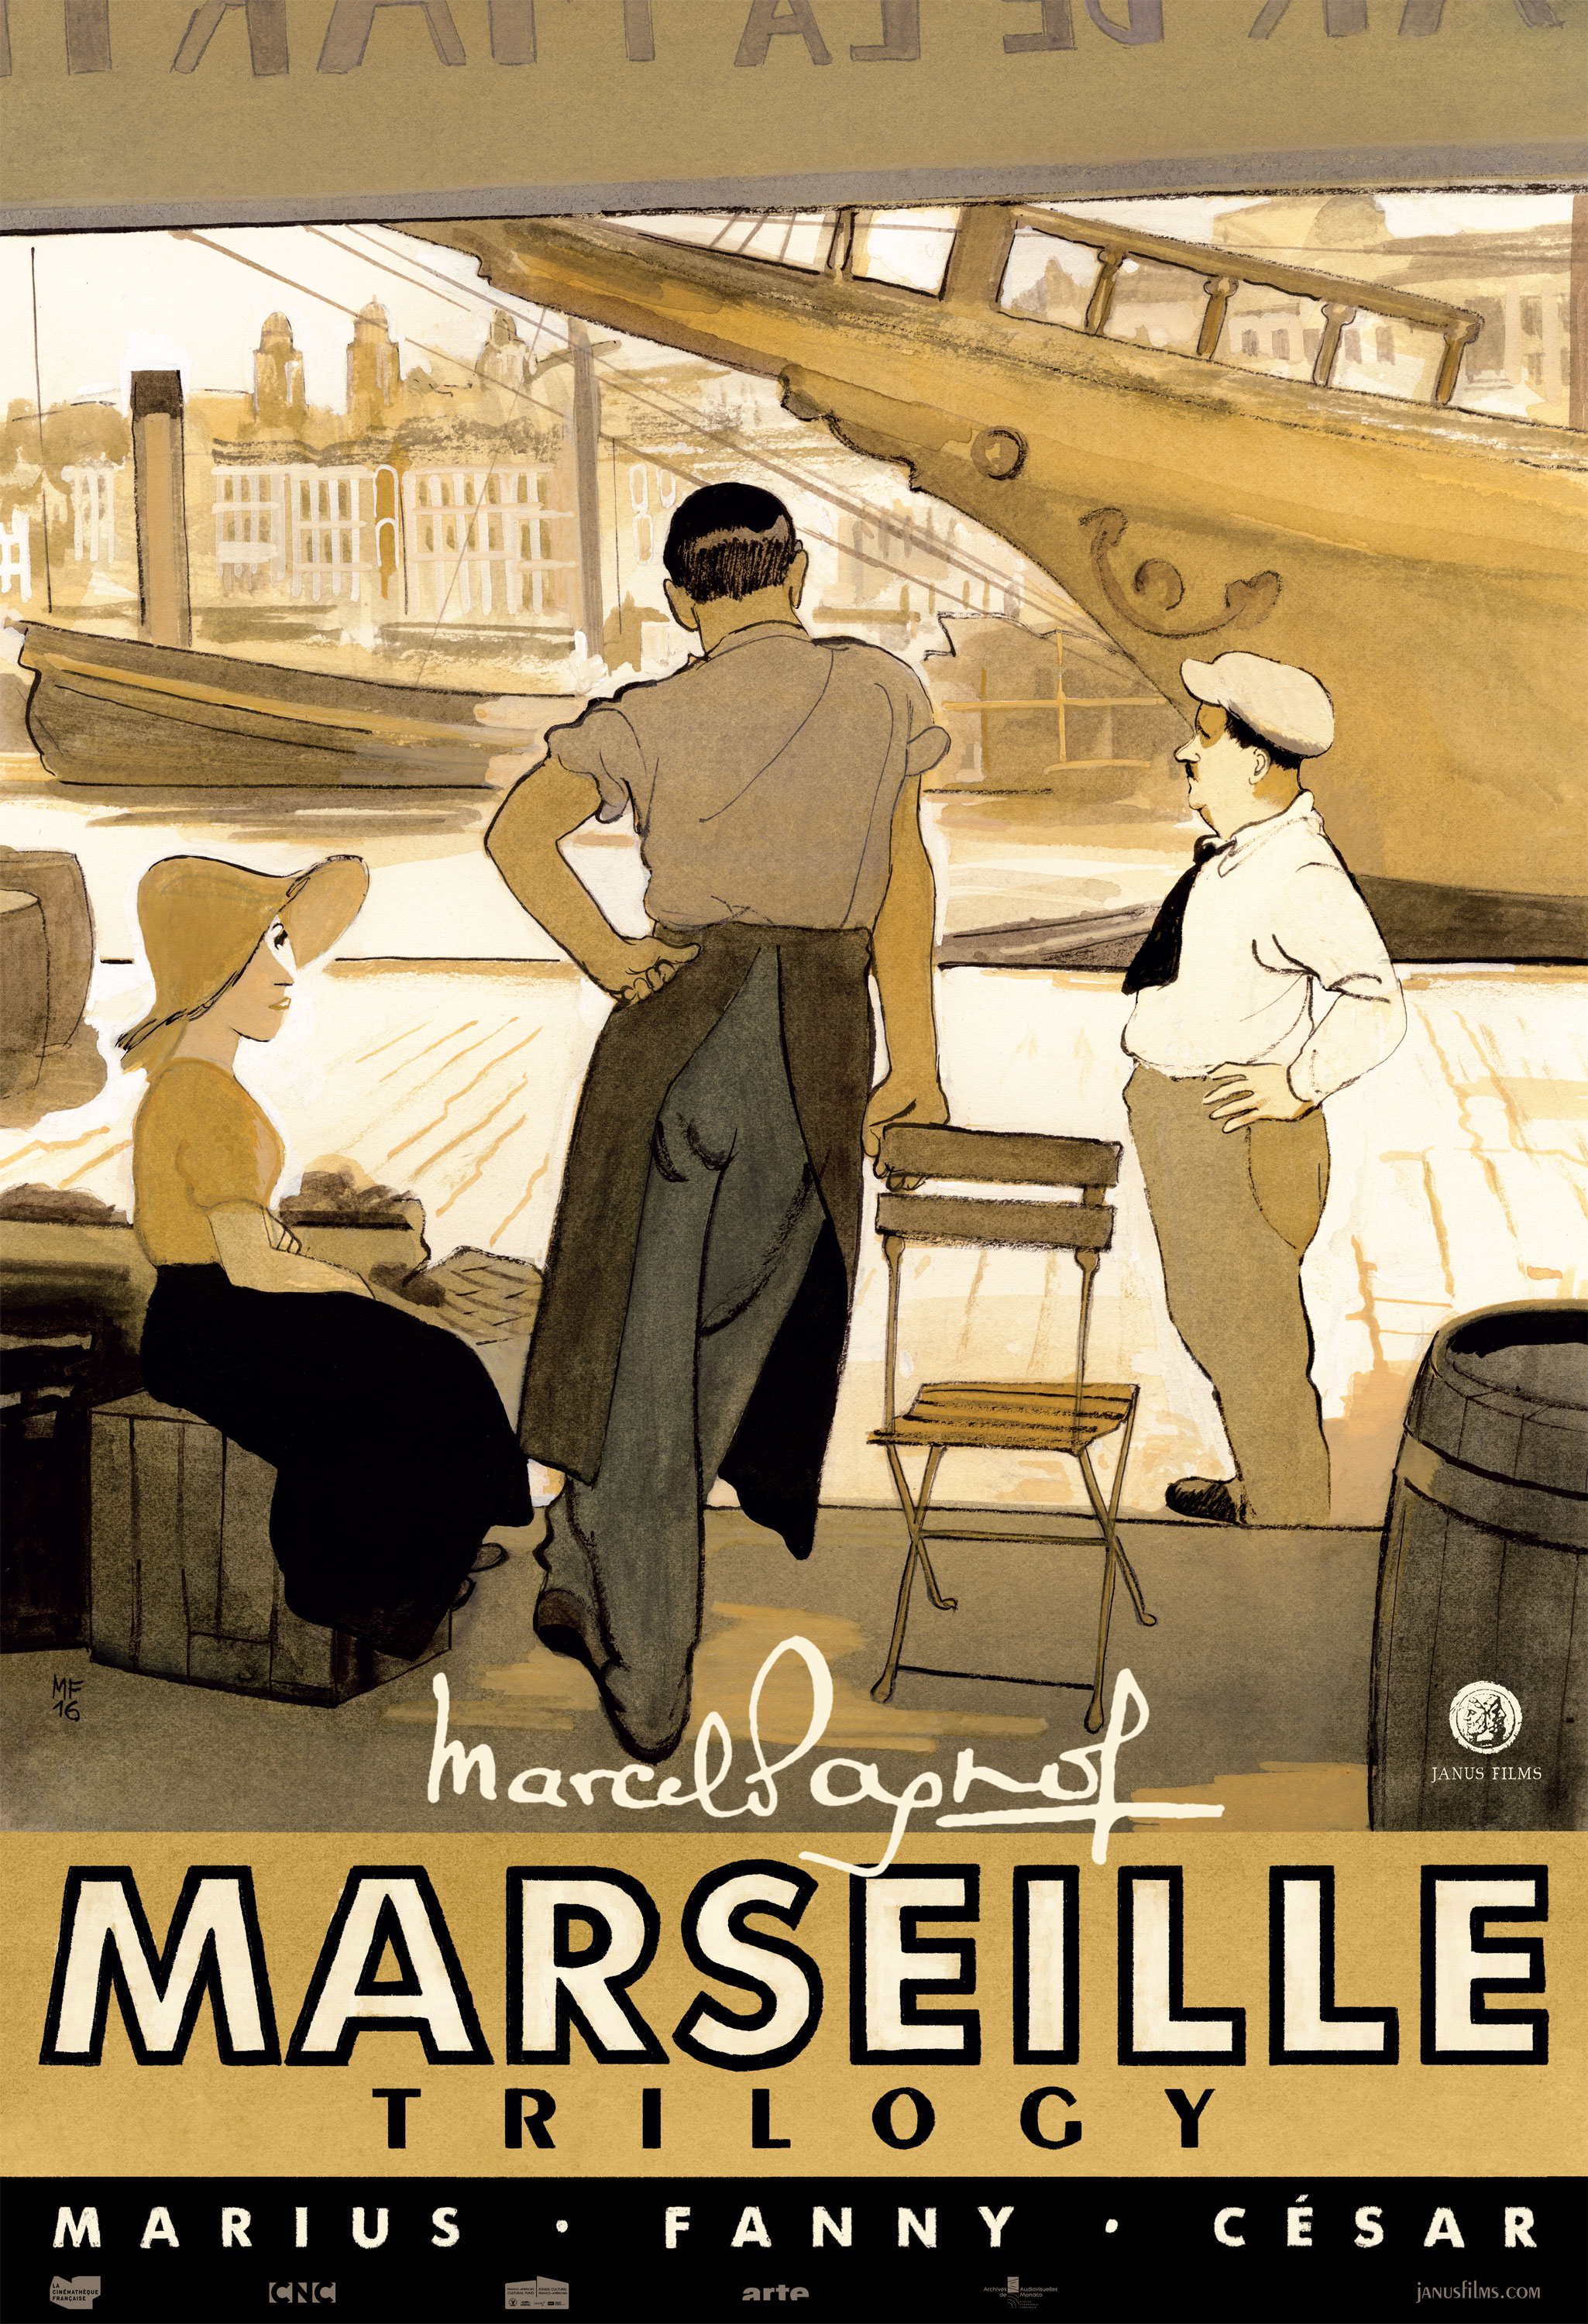 Premiering the Marseille Trilogy Poster